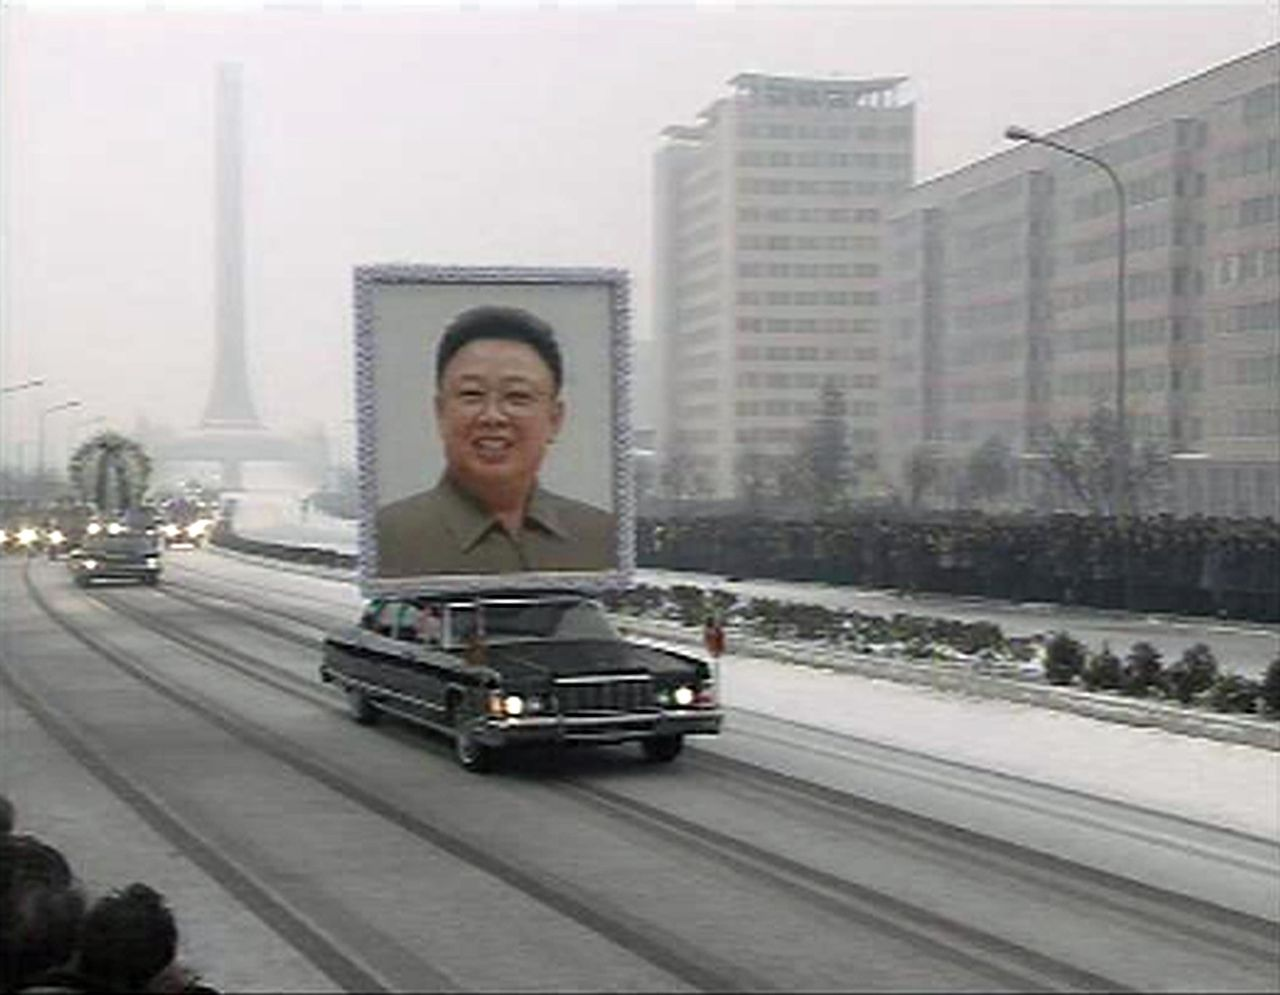 "A limousine carrying a portrait of late North Korean leader Kim Jong-il leads his funeral procession past crowds on a street in Pyongyang in this still image taken from video December 28, 2011. North Korea's military staged a huge funeral procession on Wednesday in the snowy streets of the capital Pyongyang for its deceased ""dear leader,"" Kim Jong-il, readying a transition to his son, Kim Jong-un. REUTERS/KRT via Reuters TV (NORTH KOREA - Tags: POLITICS OBITUARY TPX IMAGES OF THE DAY) NORTH KOREA OUT. NO COMMERCIAL OR EDITORIAL SALES IN NORTH KOREA. NO SALES. NO ARCHIVES. FOR EDITORIAL USE ONLY. NOT FOR SALE FOR MARKETING OR ADVERTISING CAMPAIGNS. NORTH KOREA OUT. NO COMMERCIAL OR EDITORIAL SALES INNORTH KOREA"